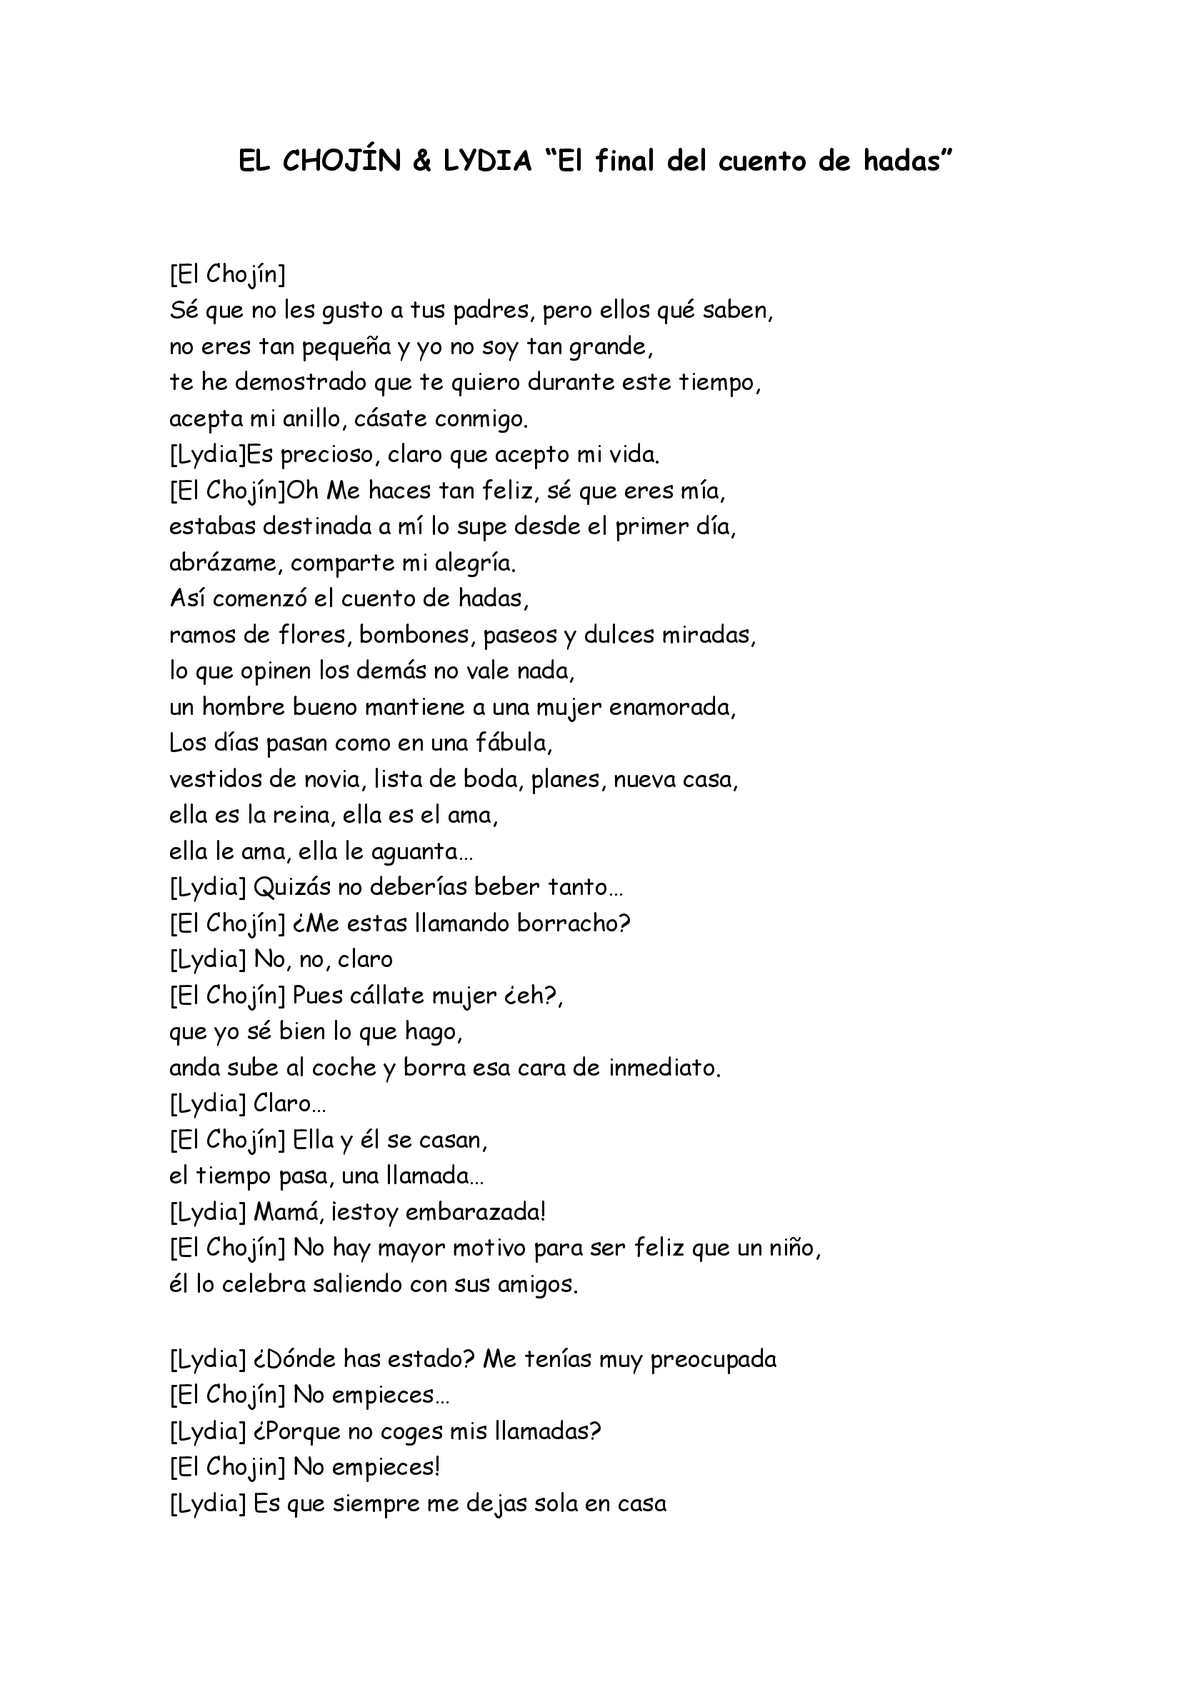 Letra de la cancion de desnuda picture 760